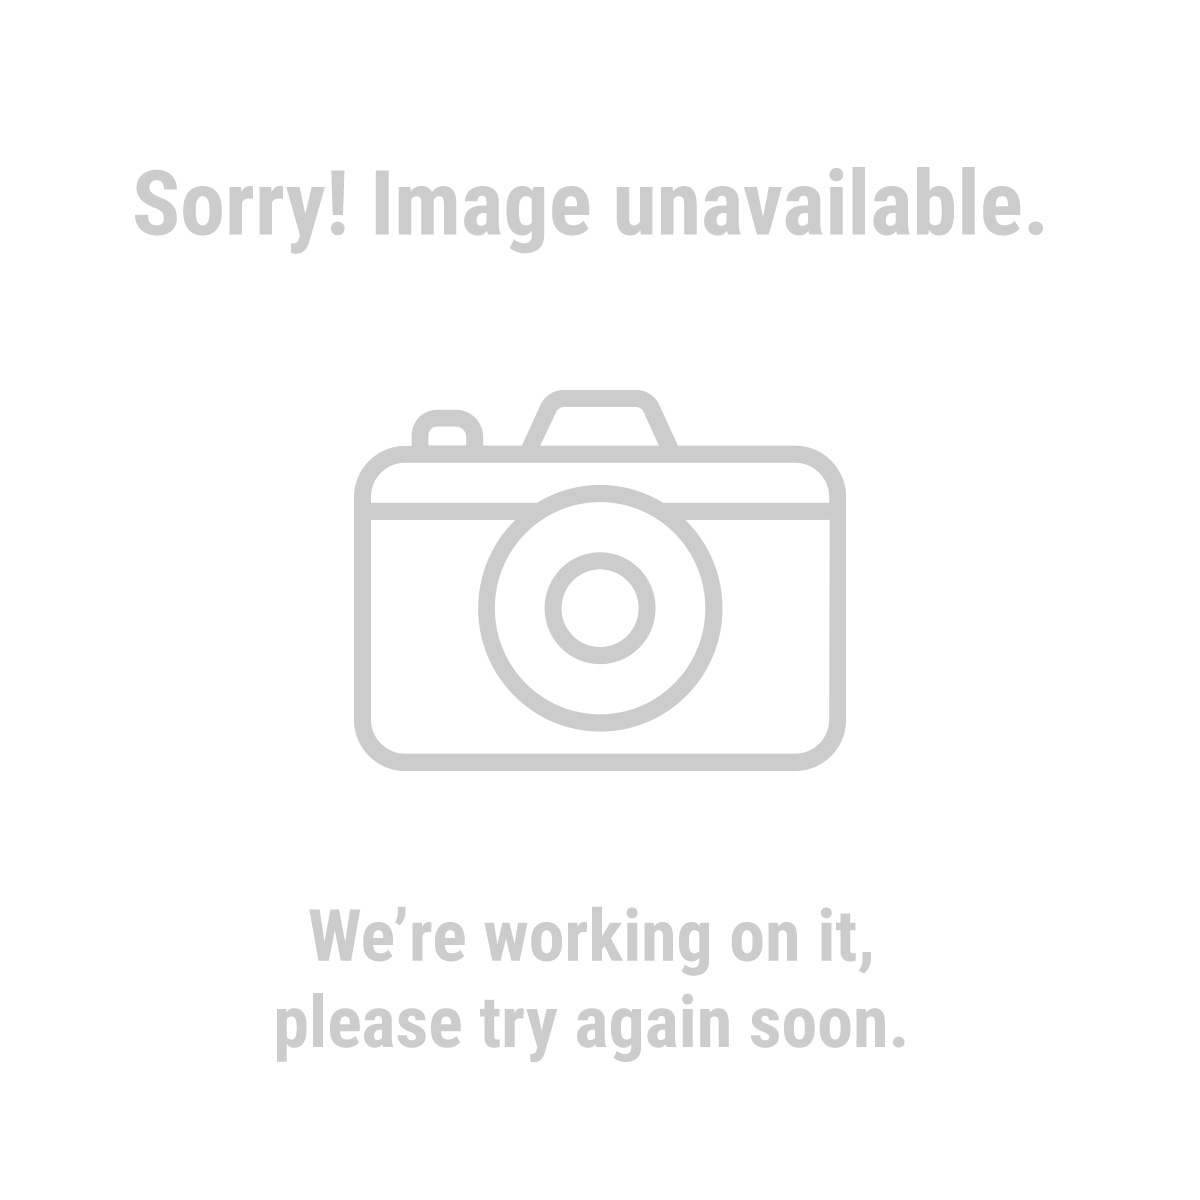 Warrior® 61215 14 in. Cut-off Wheel for Metal